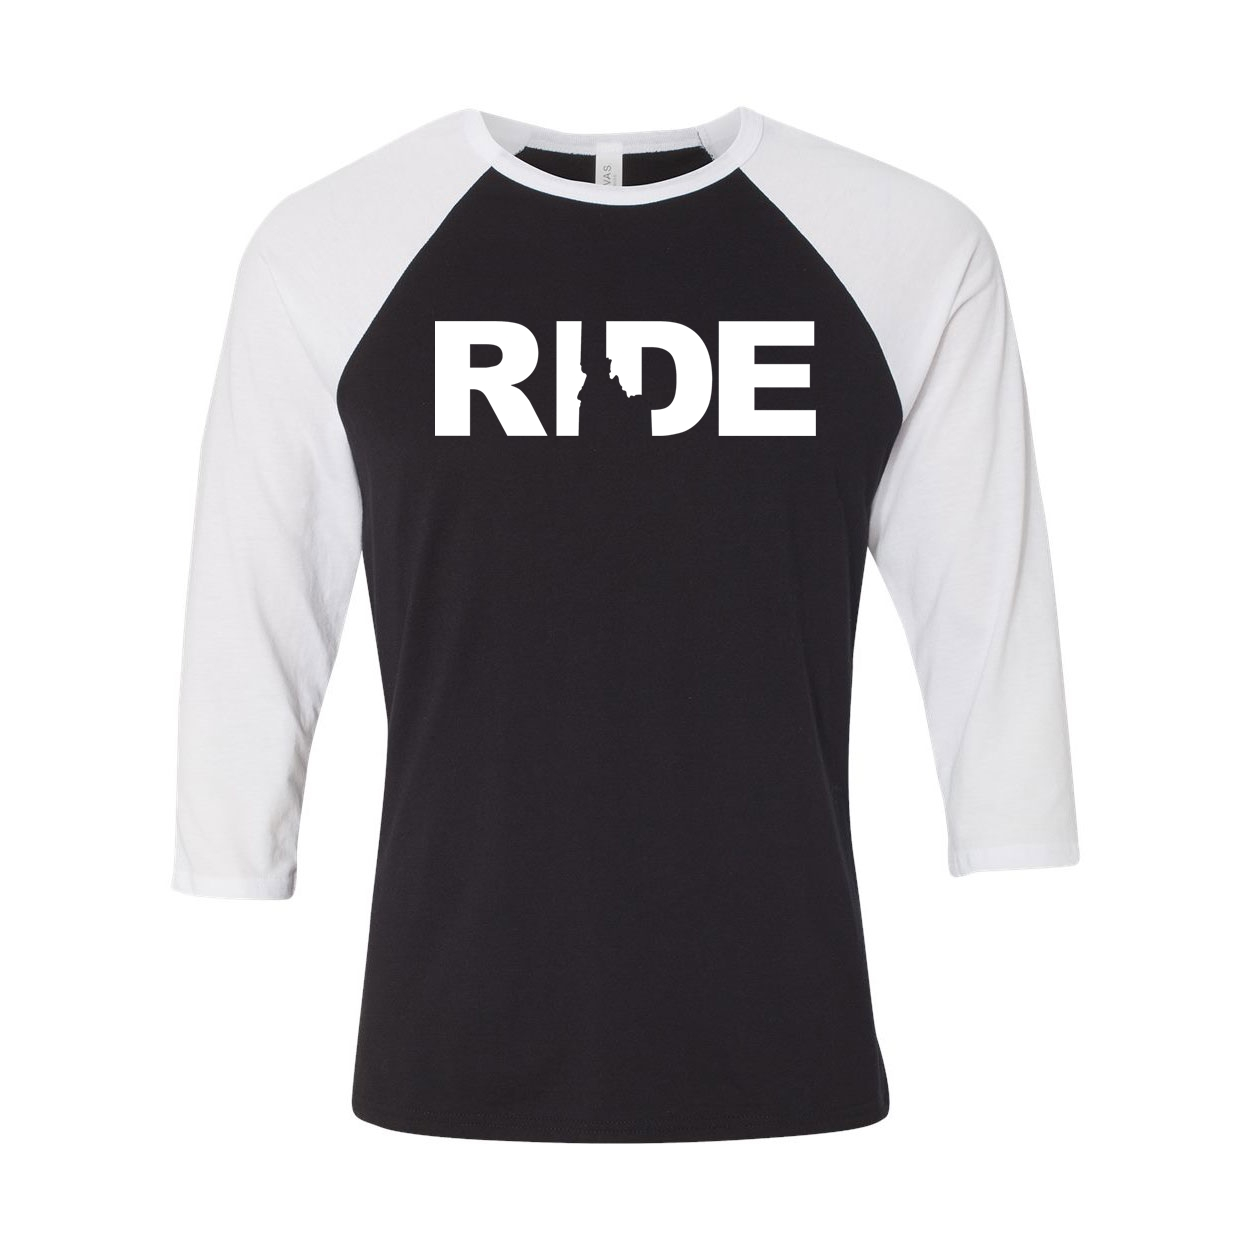 Ride Idaho Classic Raglan Shirt Black/White (White Logo)